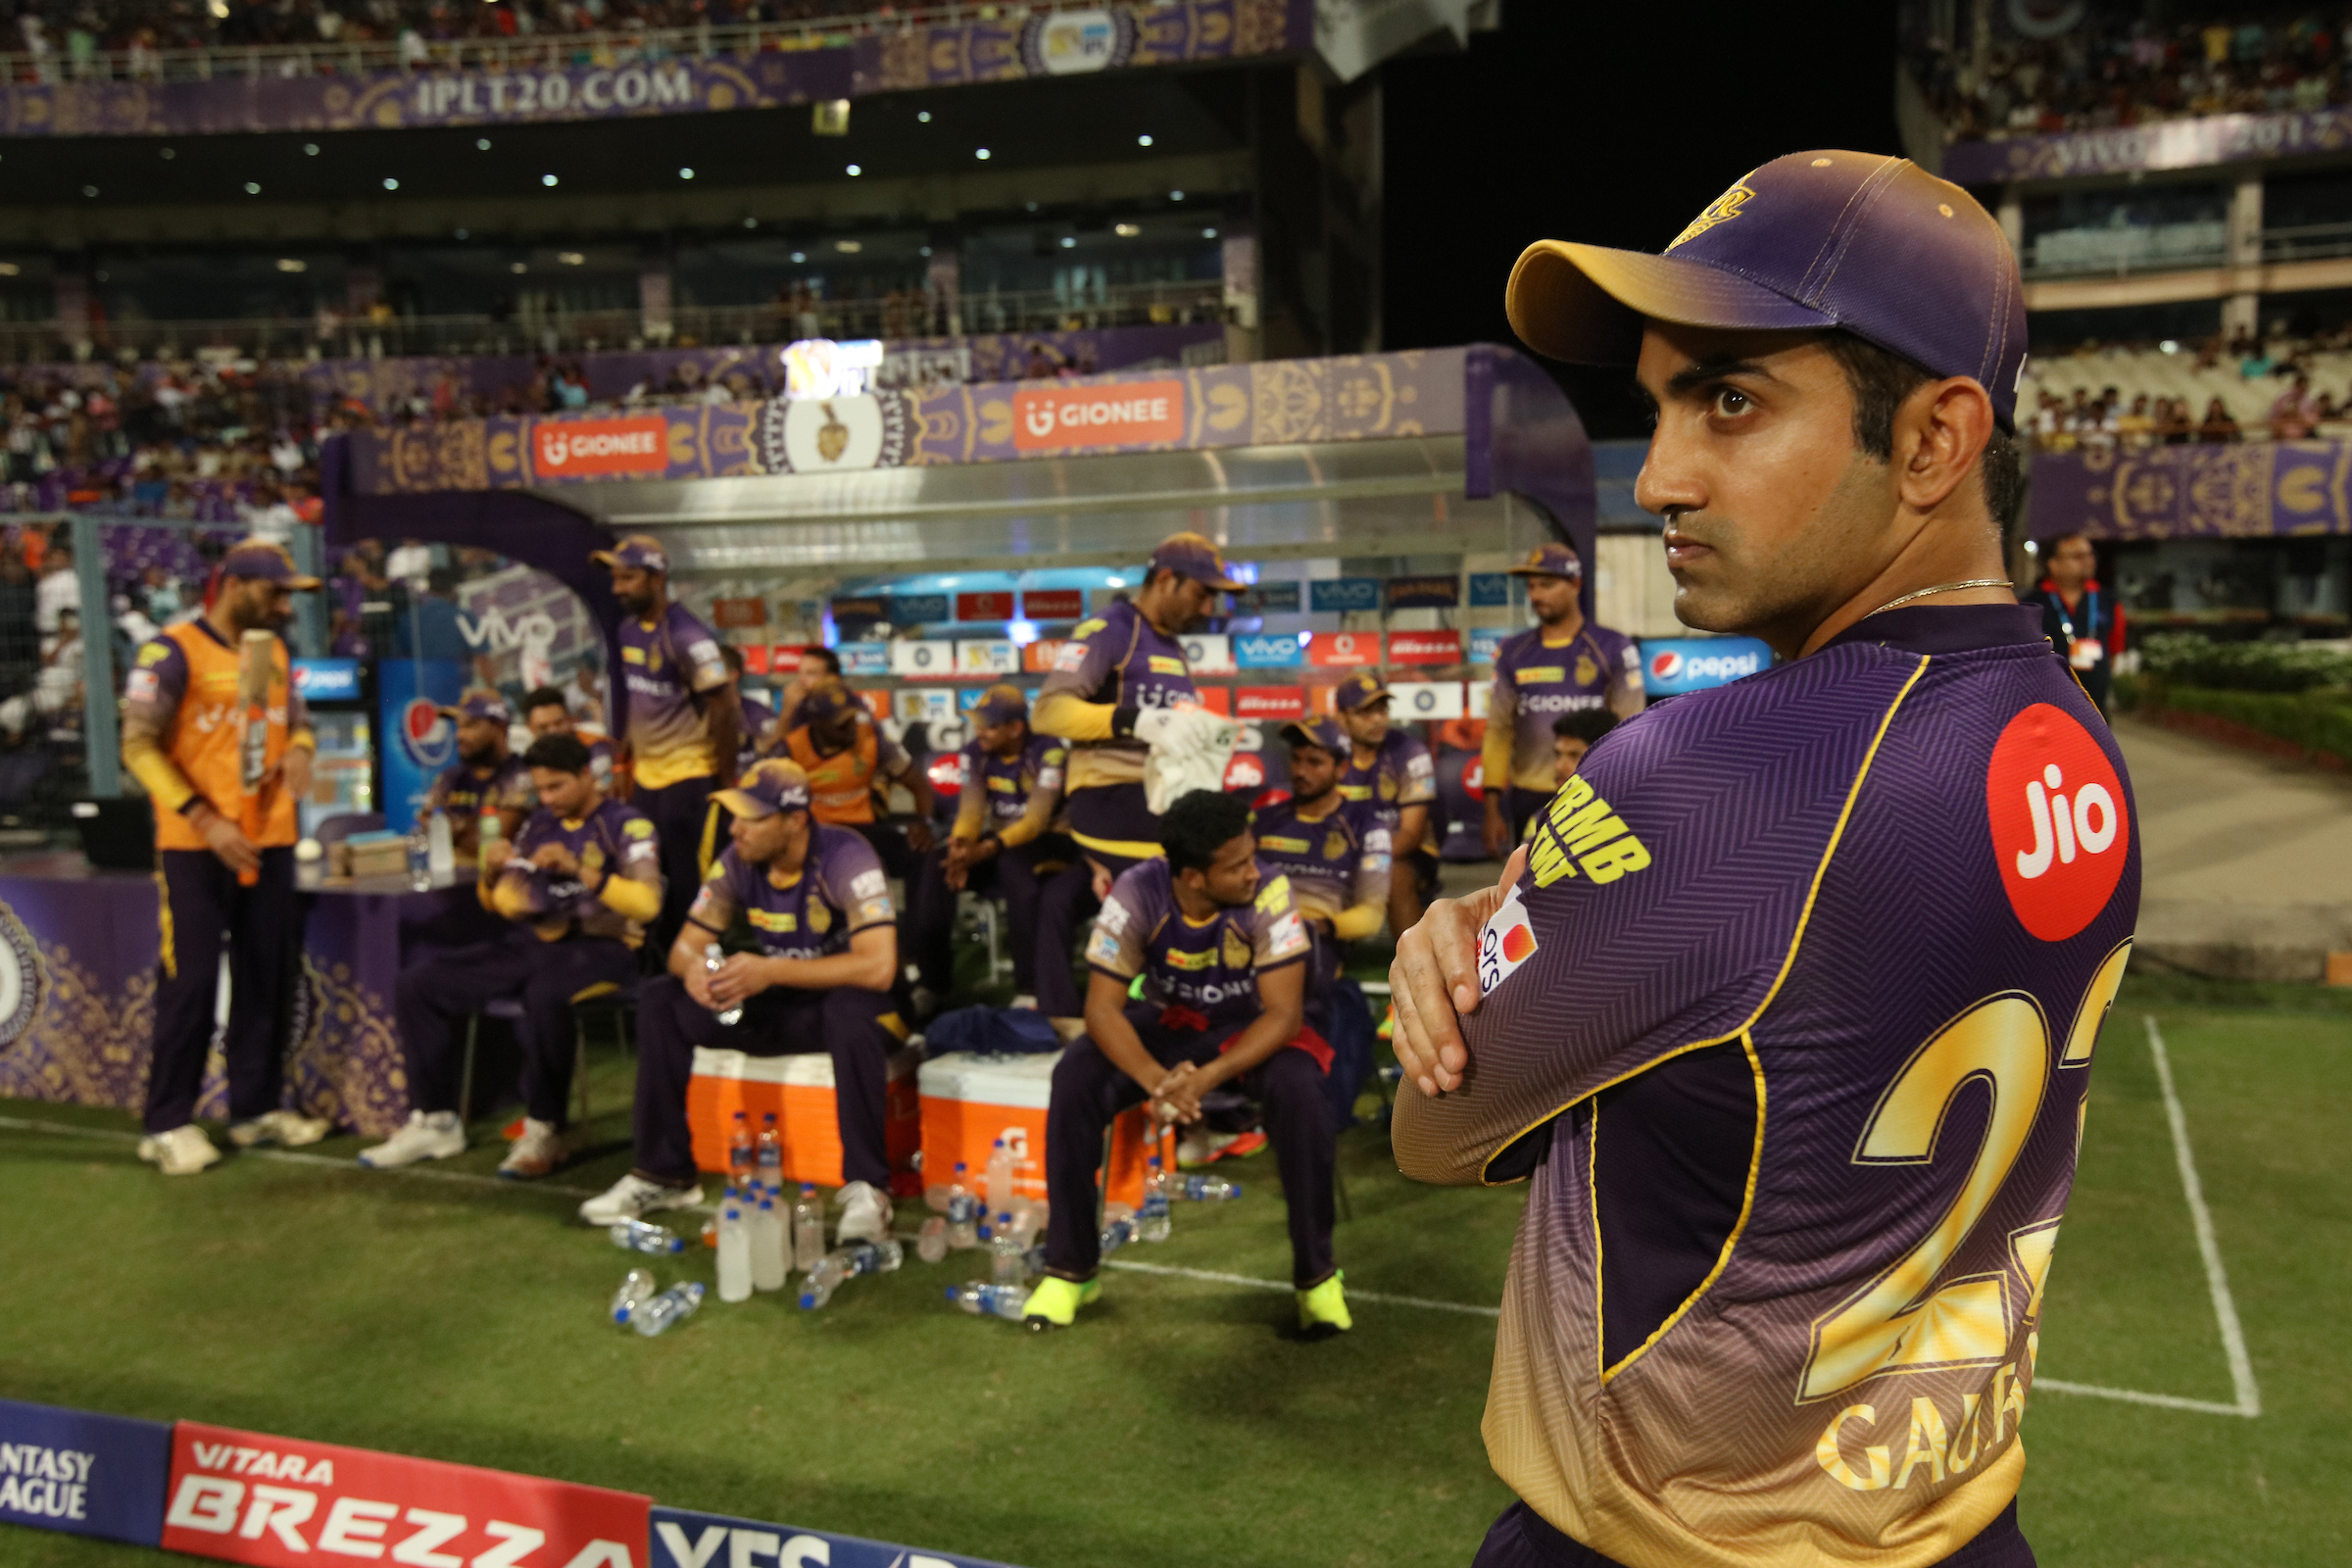 KKR decided not to retain captain Gautam Gambhir (Image: Saikat Das/Sportzpics/IPL)